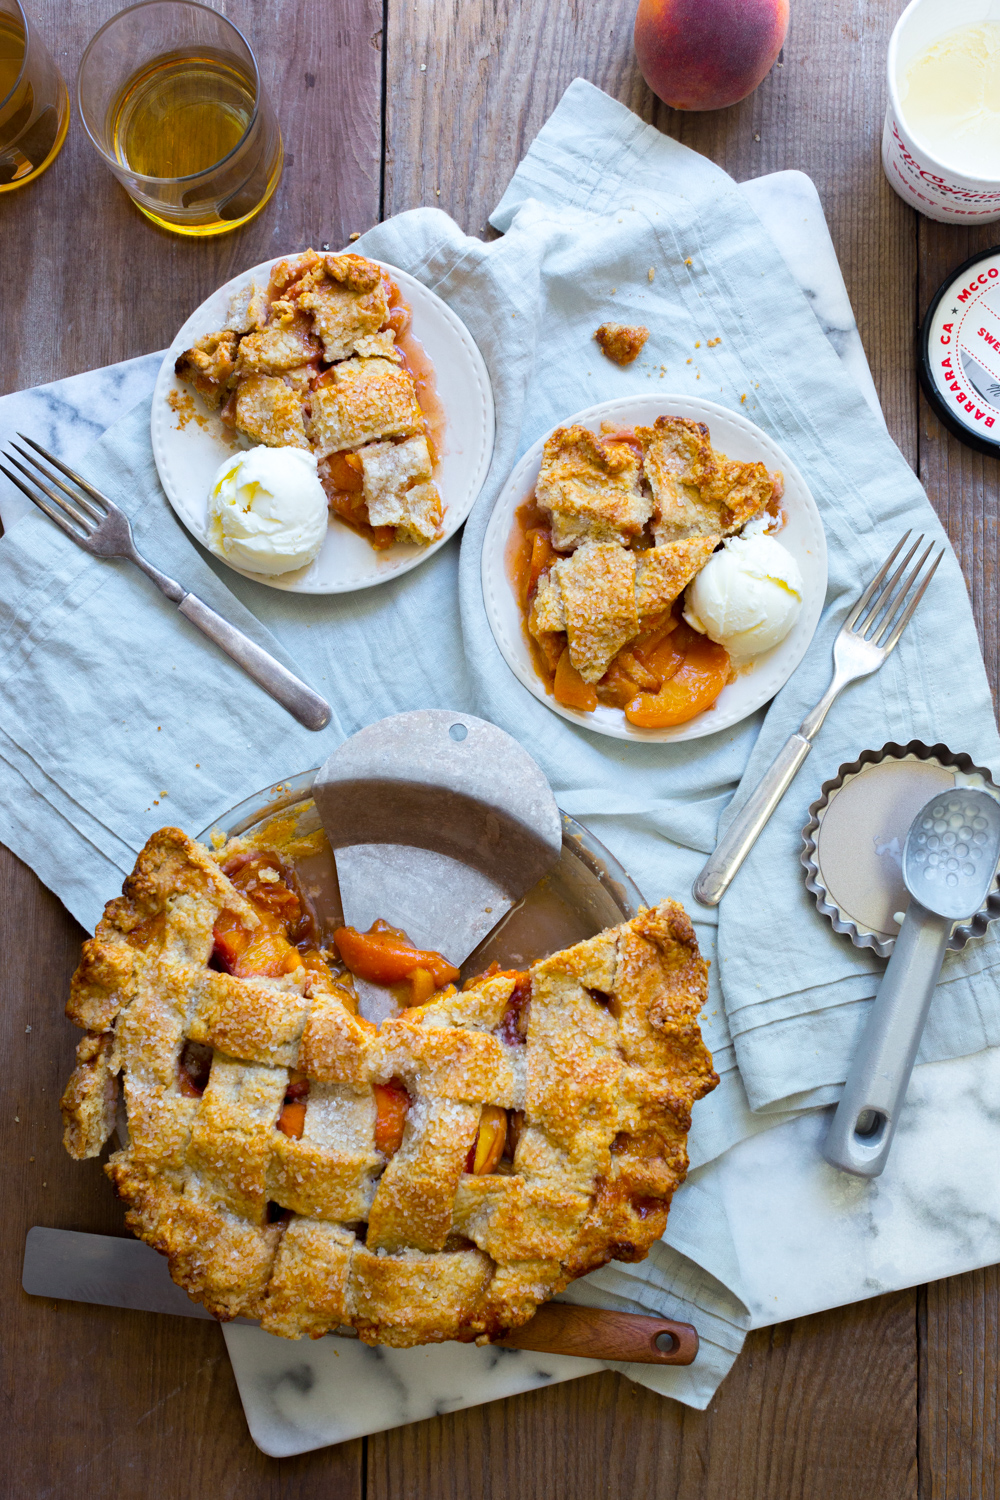 Creamy cold scoops of ice cream on thick, juicy slices of Rye Rye Peach Pie.